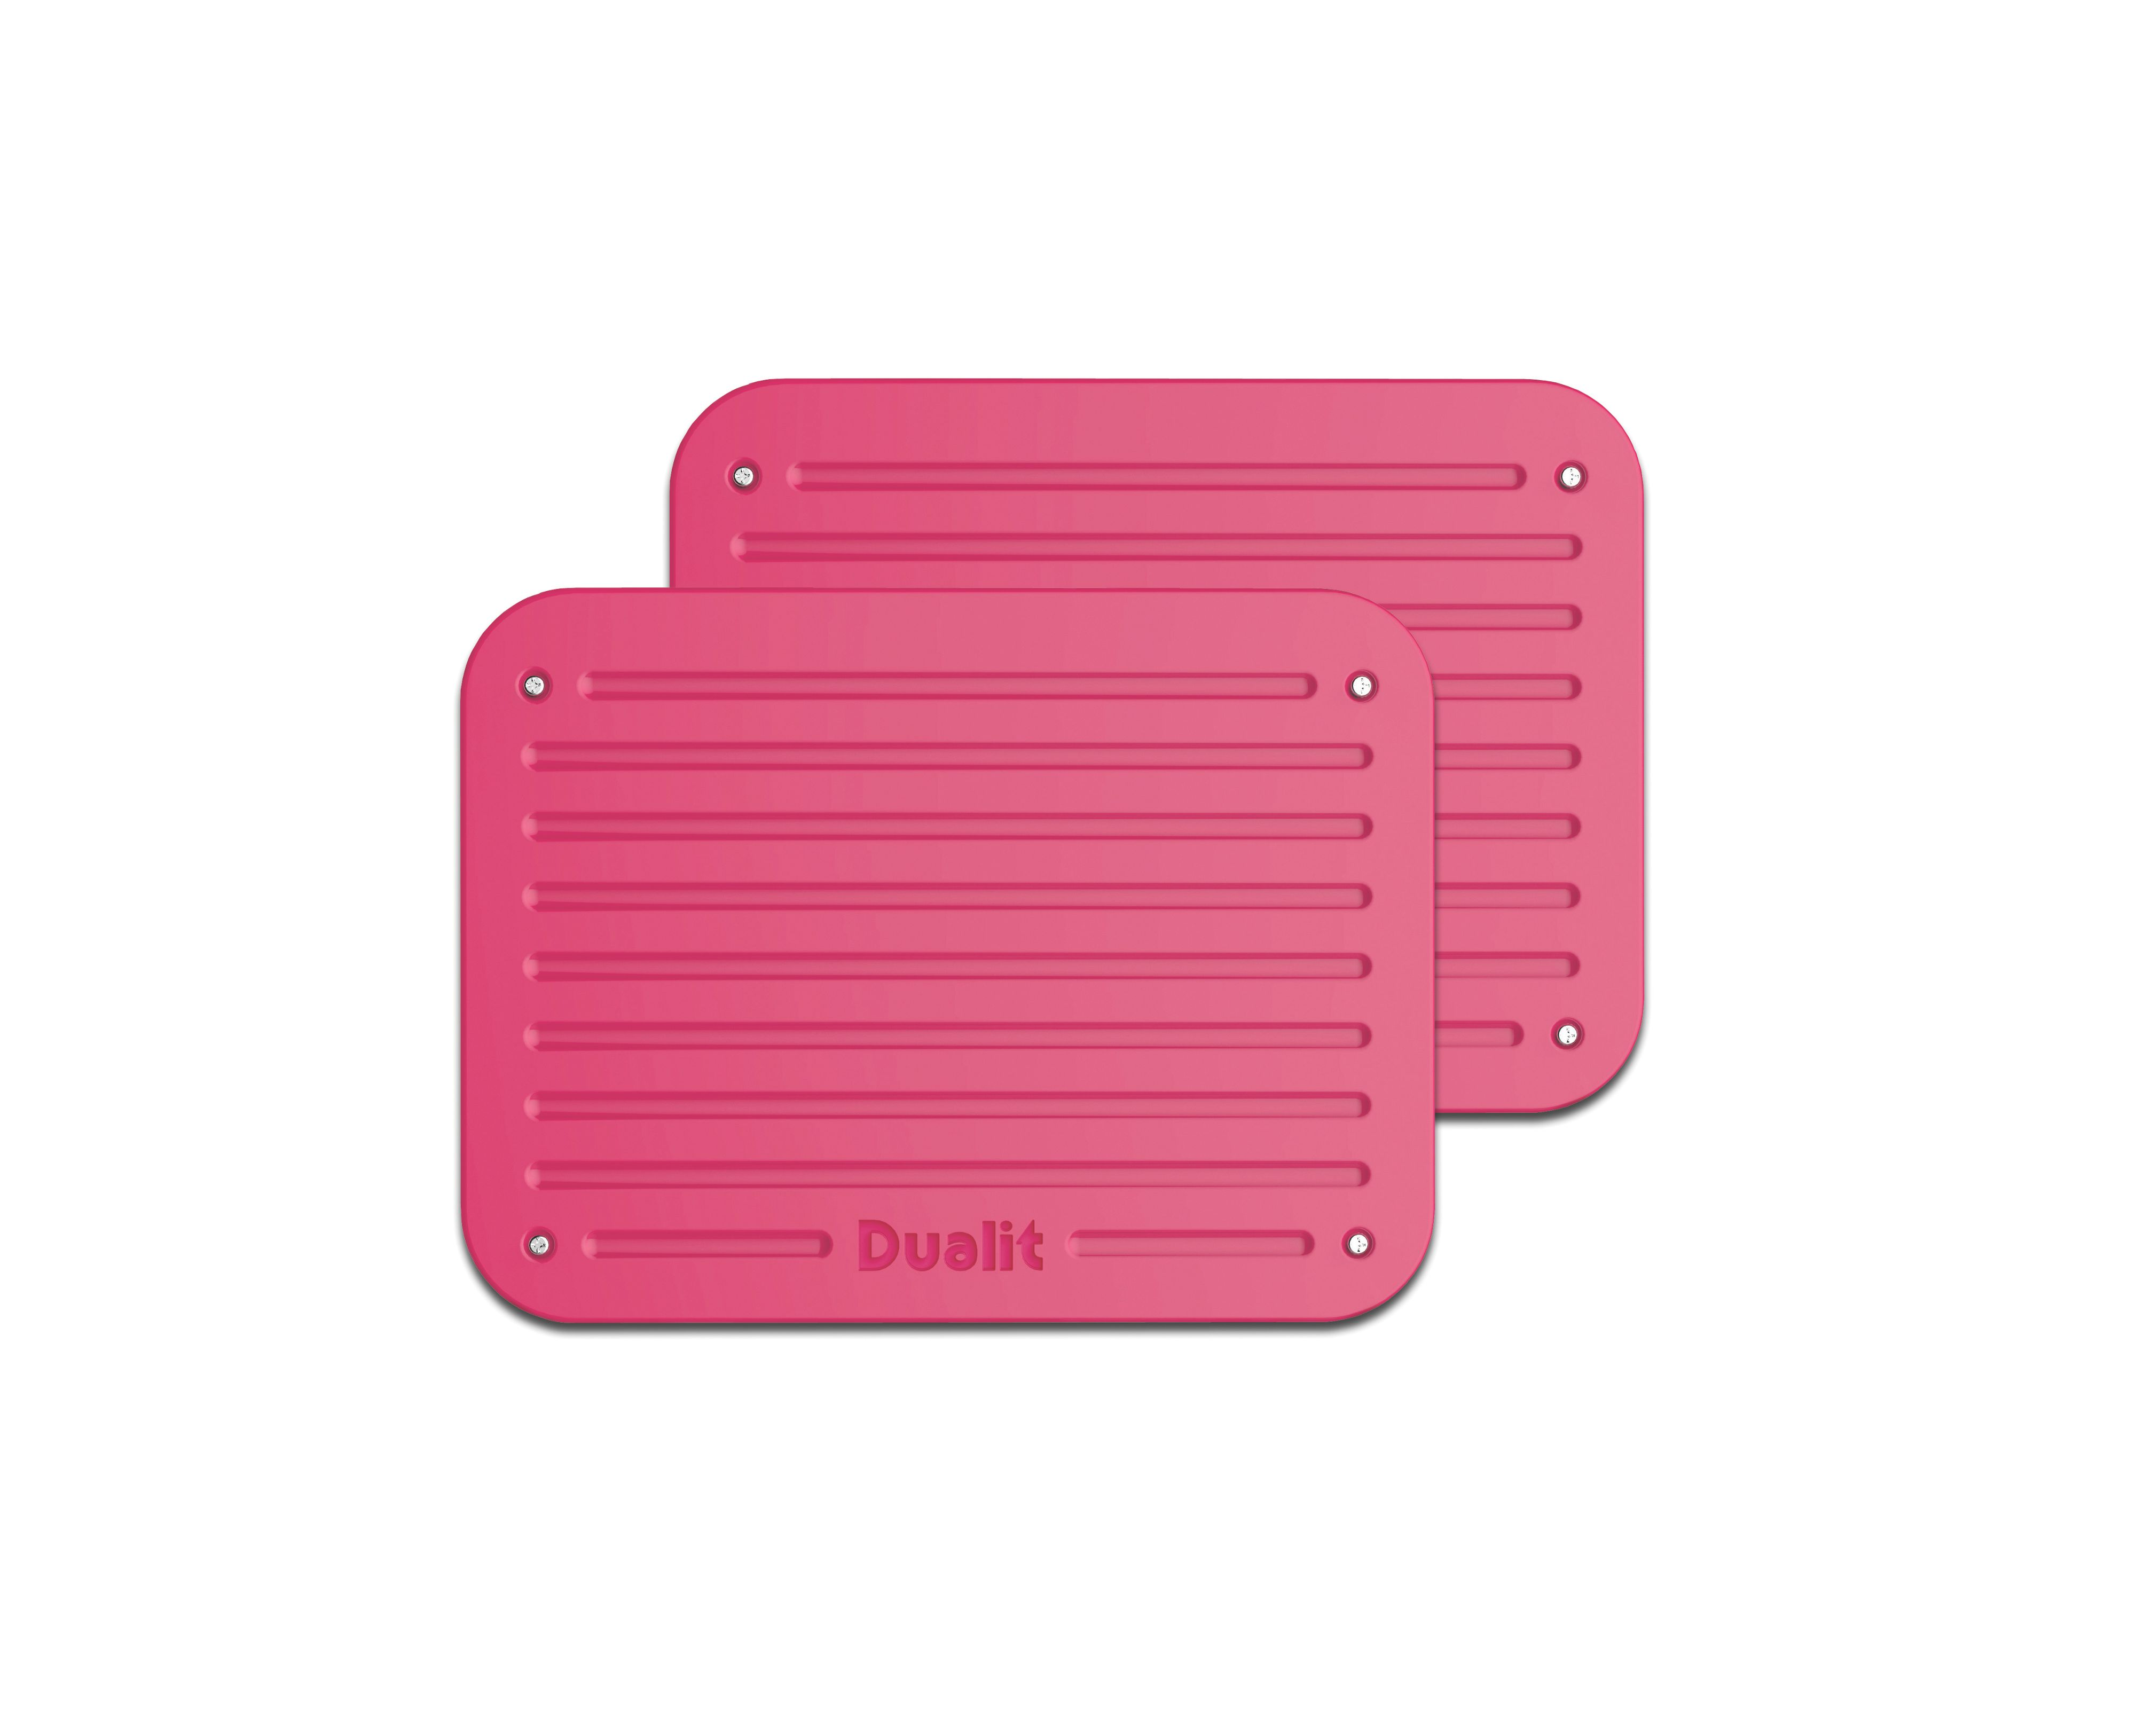 Chili pink Architect toaster panel set